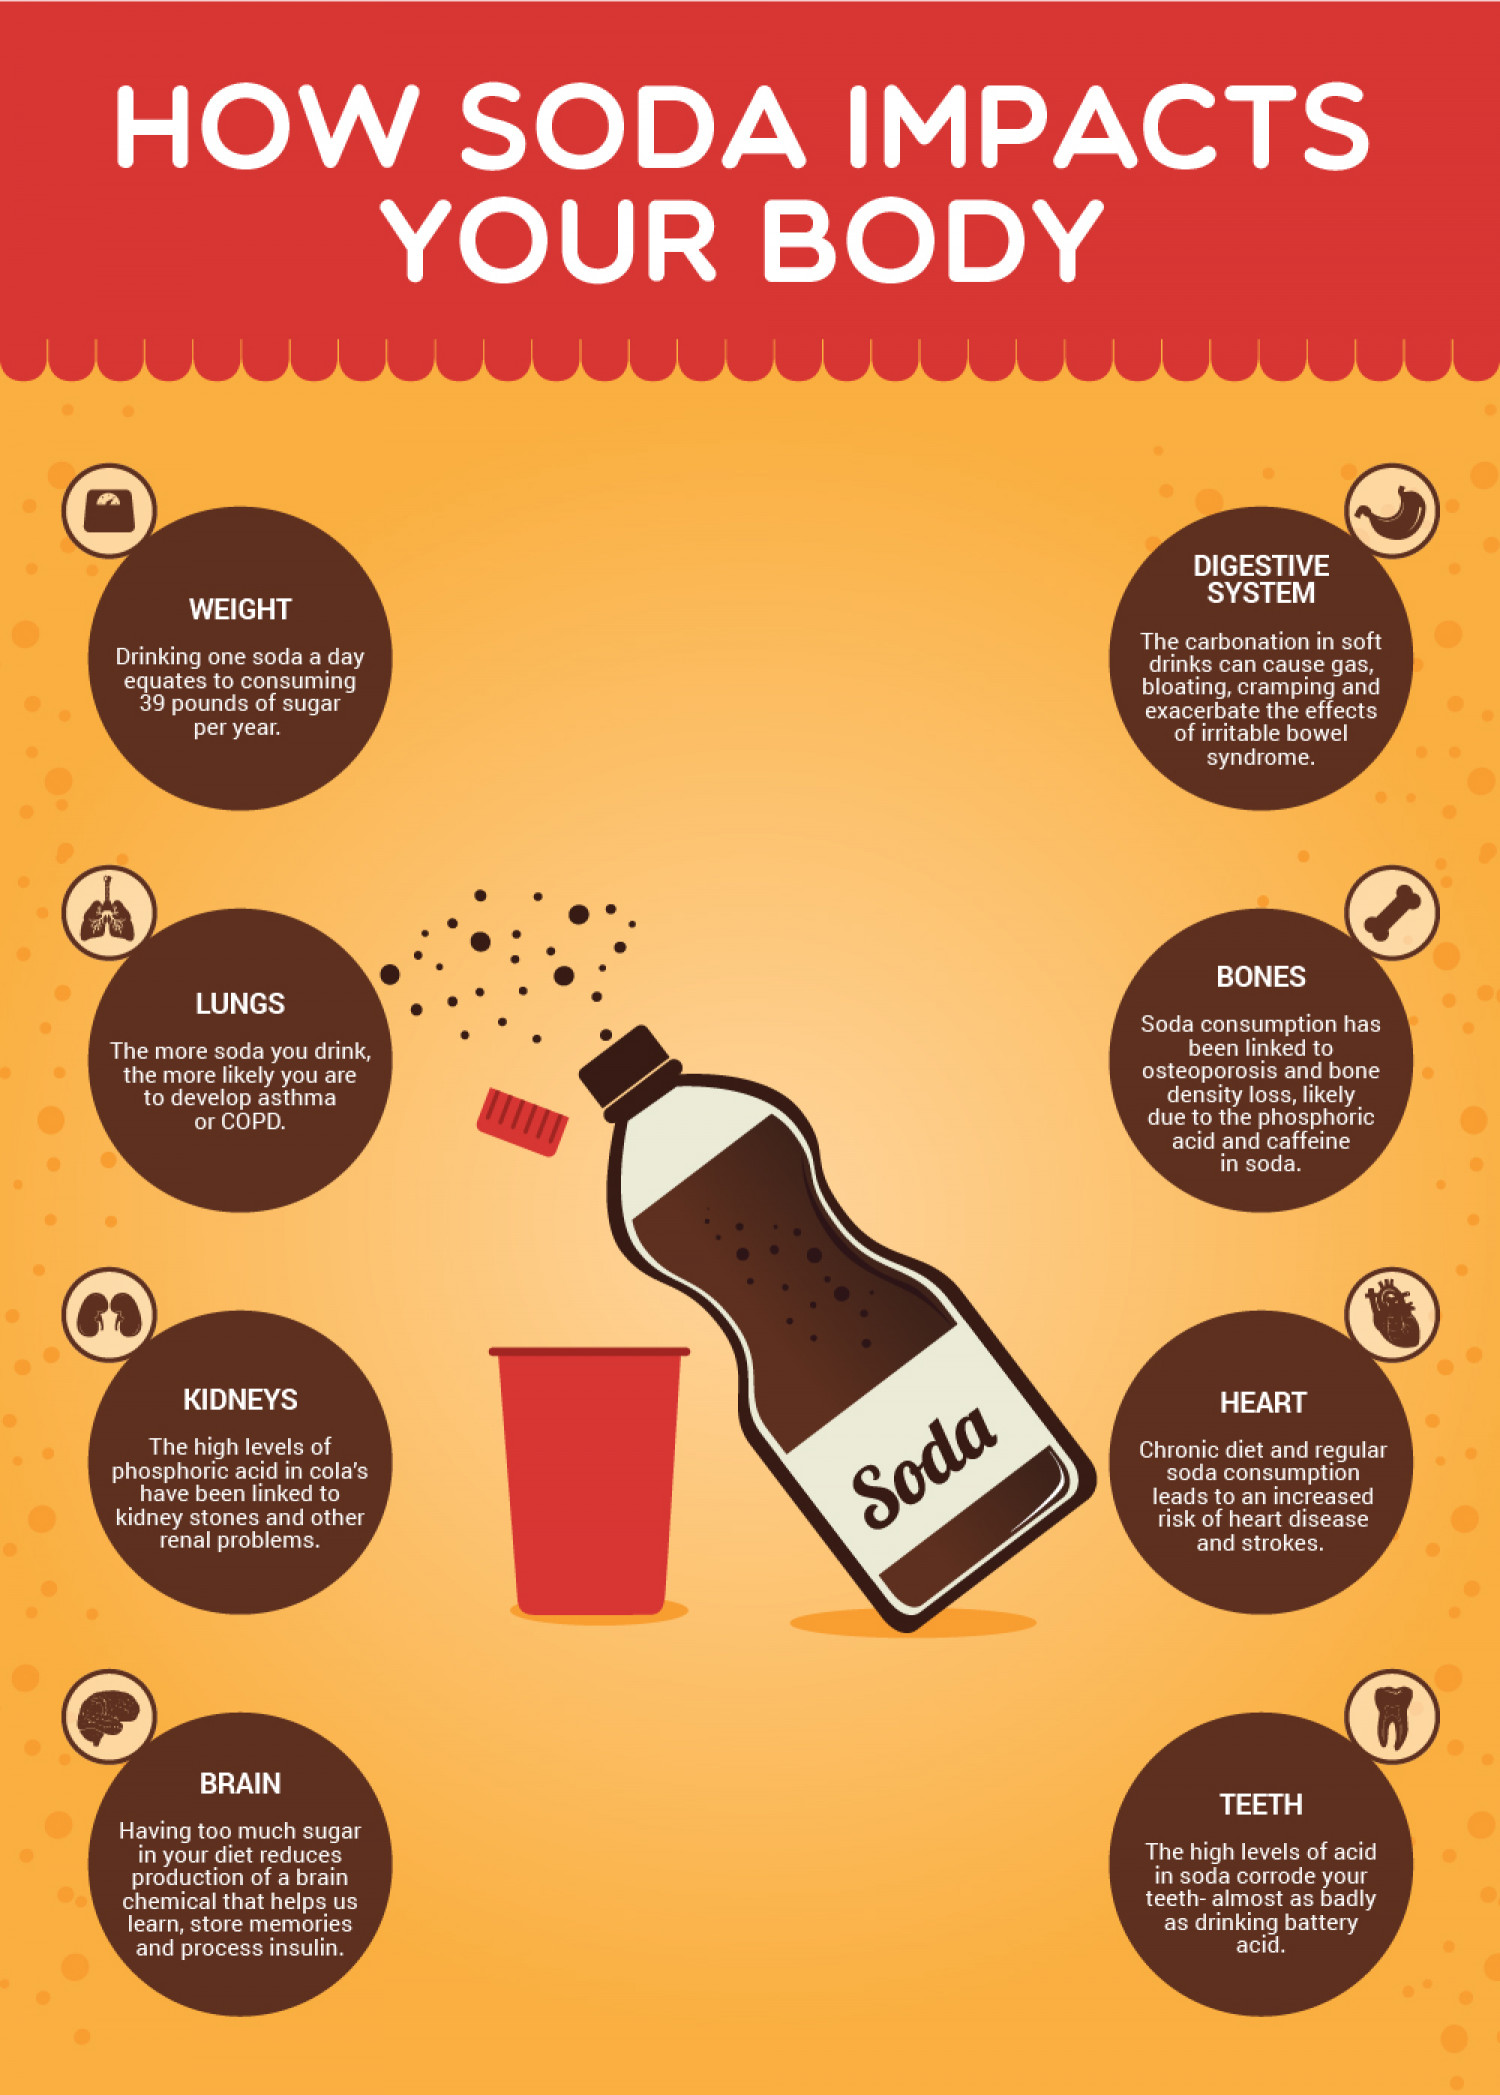 Why Are Sugary Drinks Bad For You